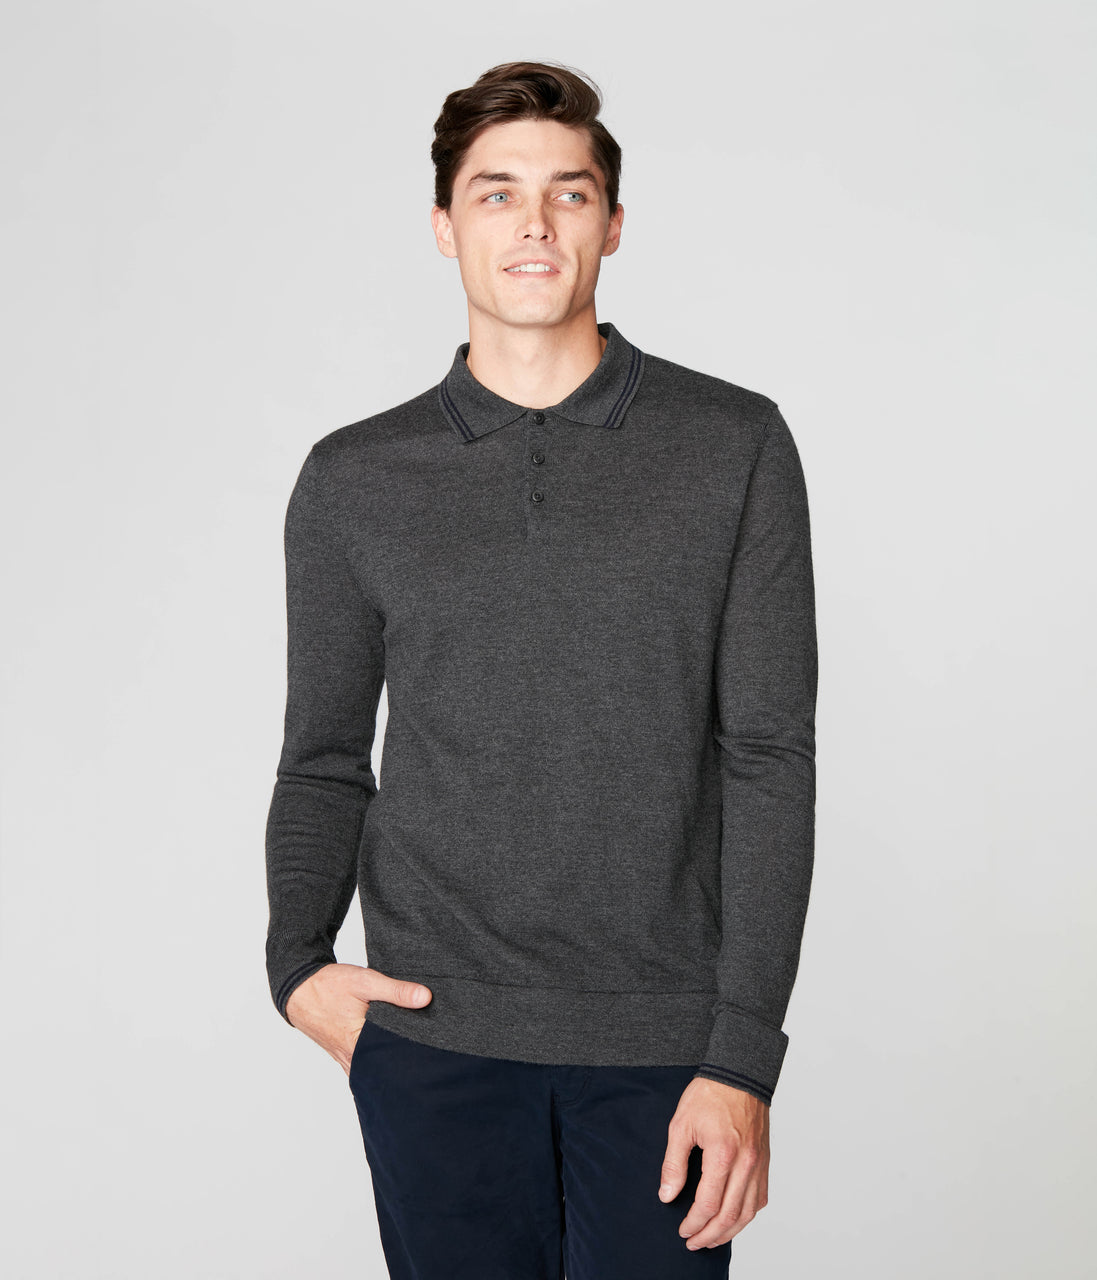 Match Point Polo in Merino Wool - Charcoal - Good Man Brand - Match Point Polo in Merino Wool - Charcoal